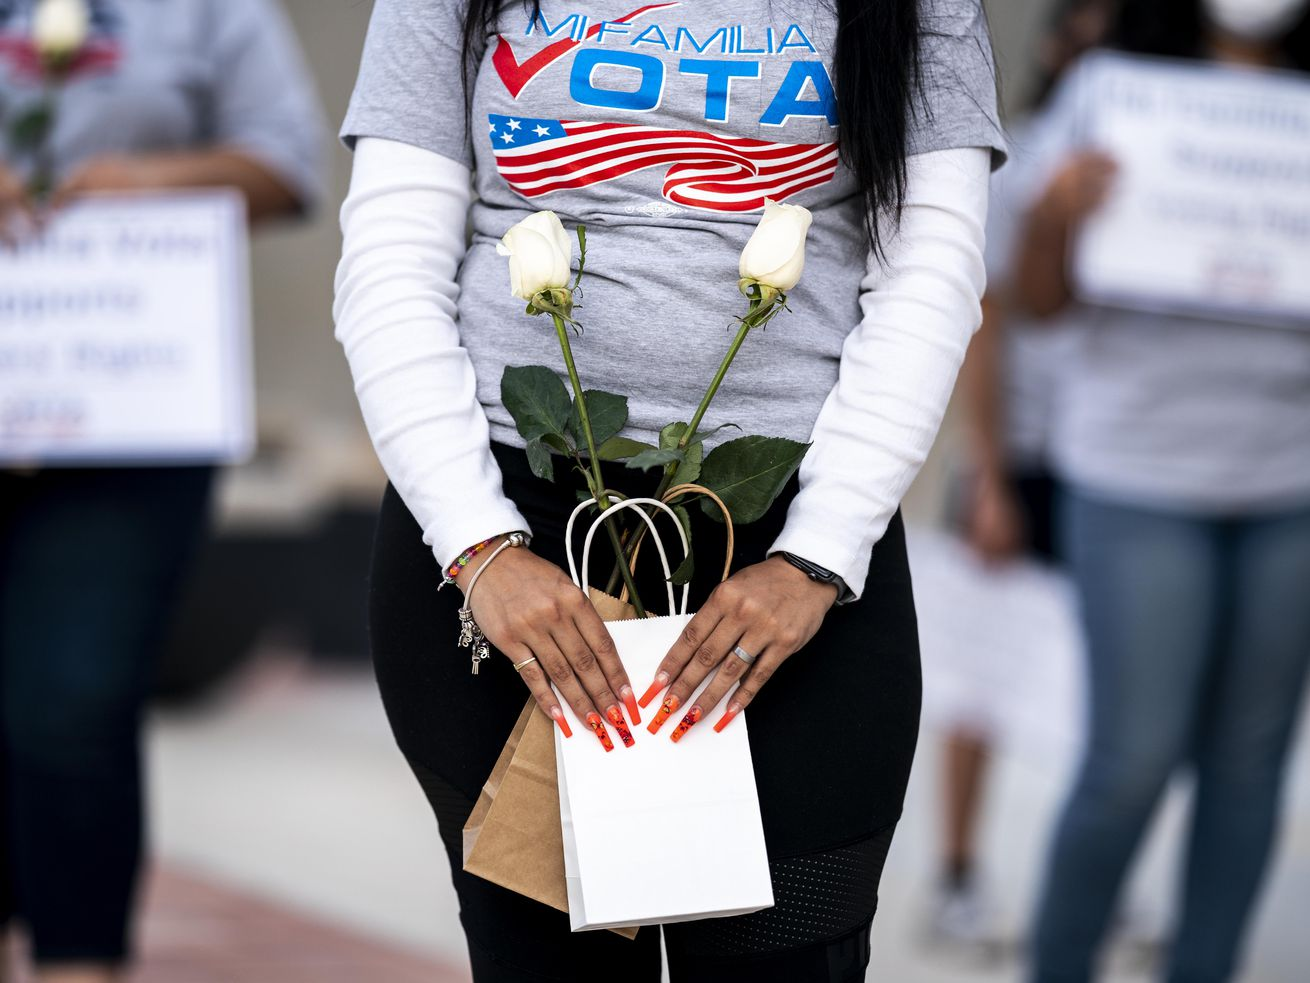 "A Latina woman wearing a shirt that reads ""Mi Familia Vota"" and carrying two small bags with a white long-stem rose in each."